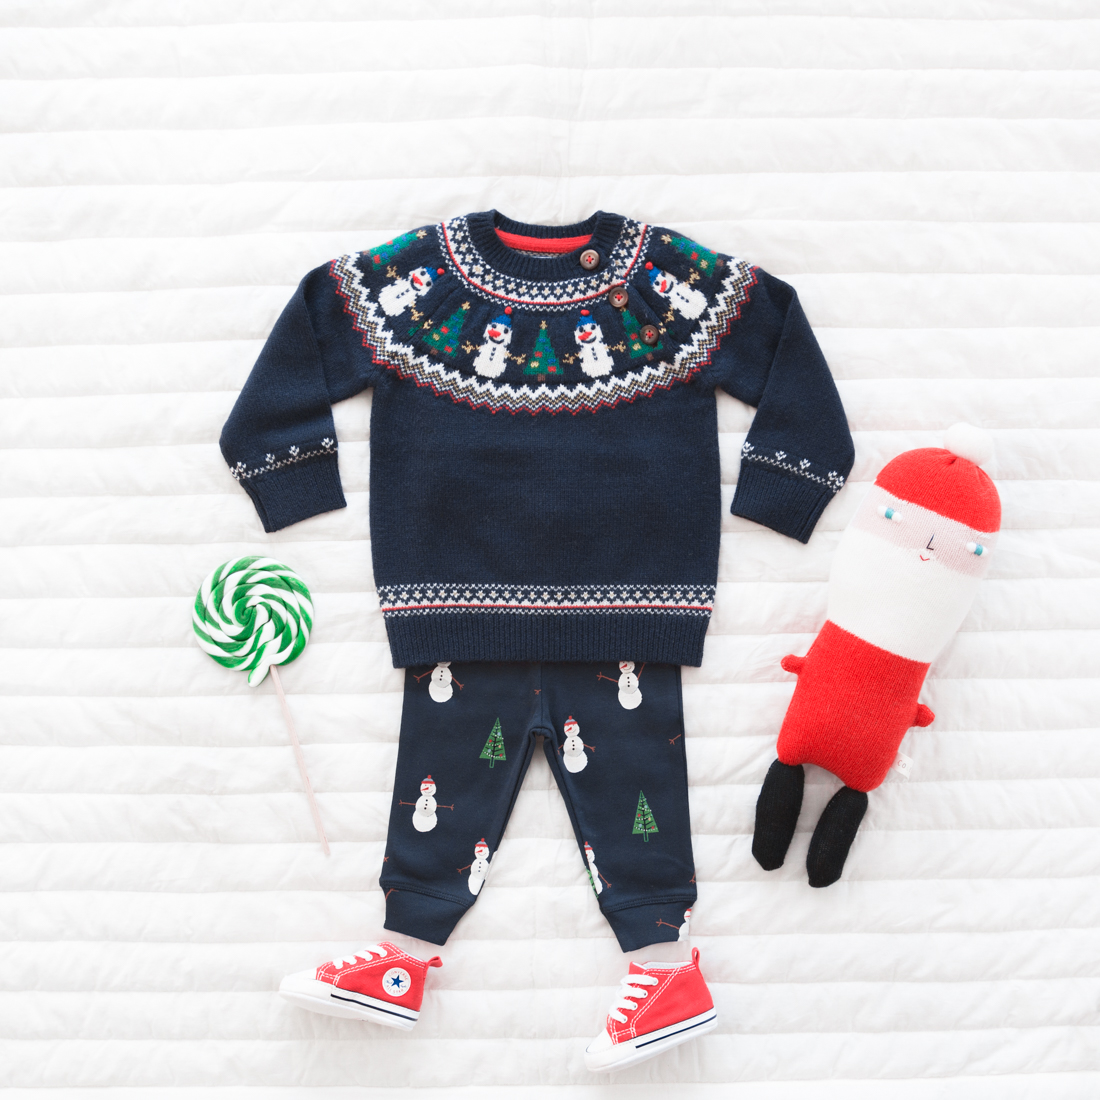 blog_mode_enfants_garcon_mini_looks_laredoute_ikks_baby_boden_boy_copyright_pauline_paulinefashionblog_com-7